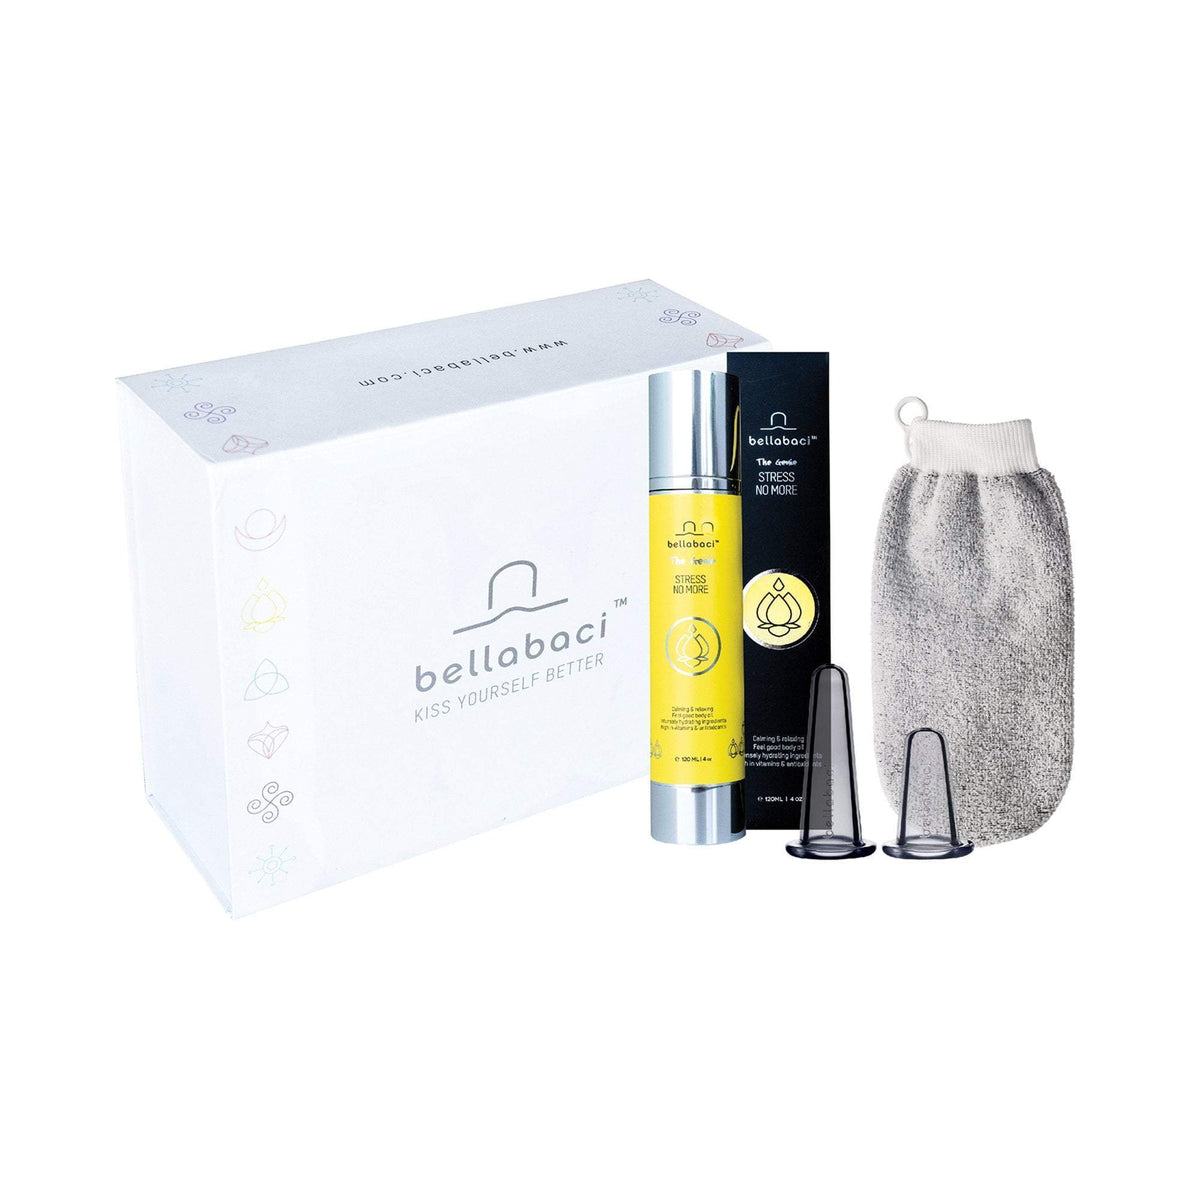 Bellabaci Stress No More Face Retail Kit